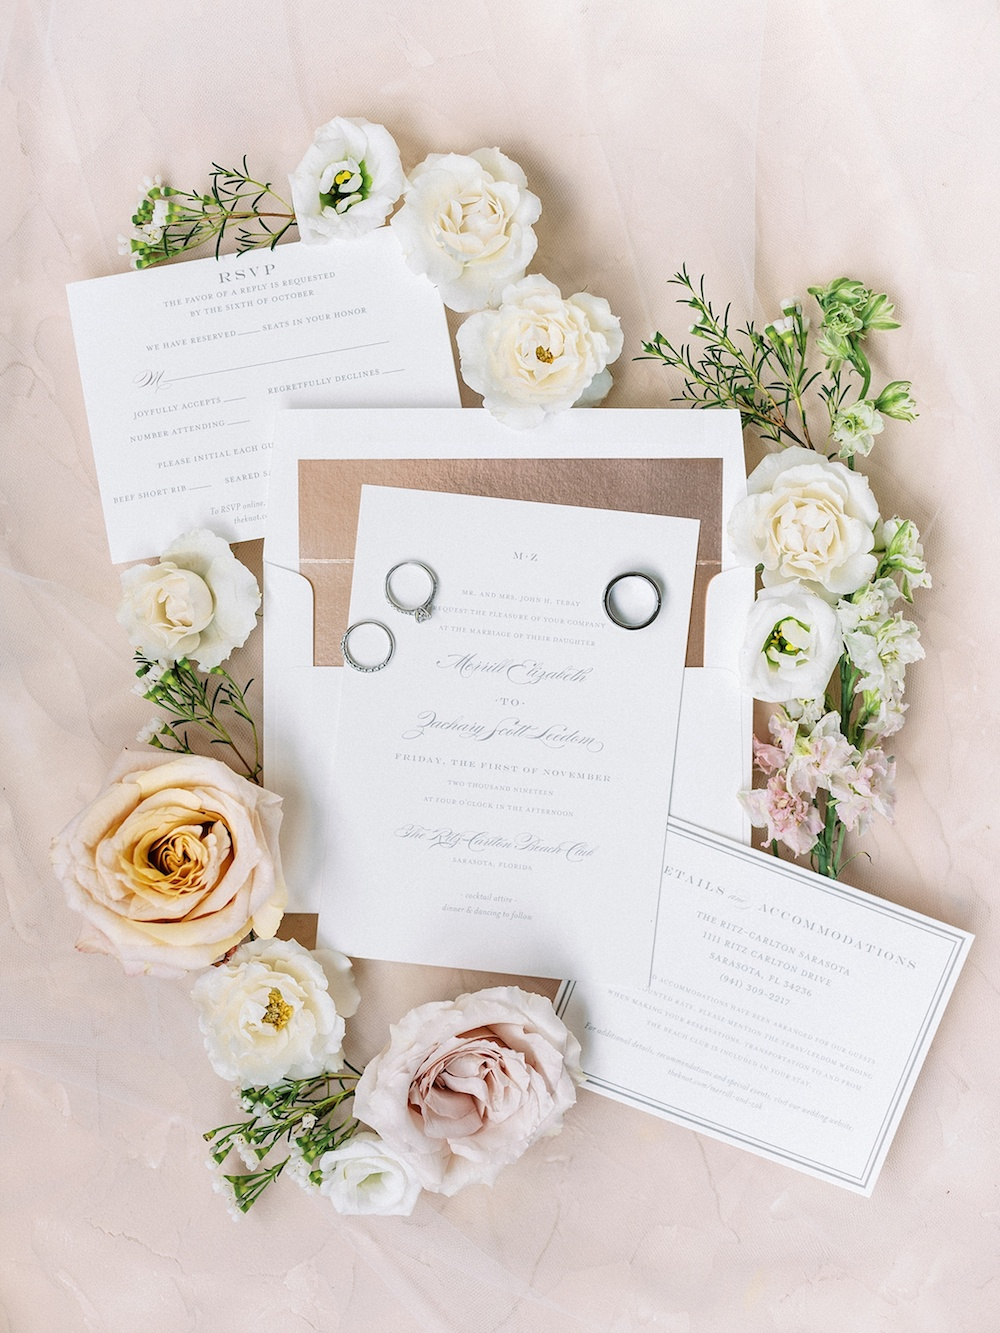 stationery surrounded by flowers and rings